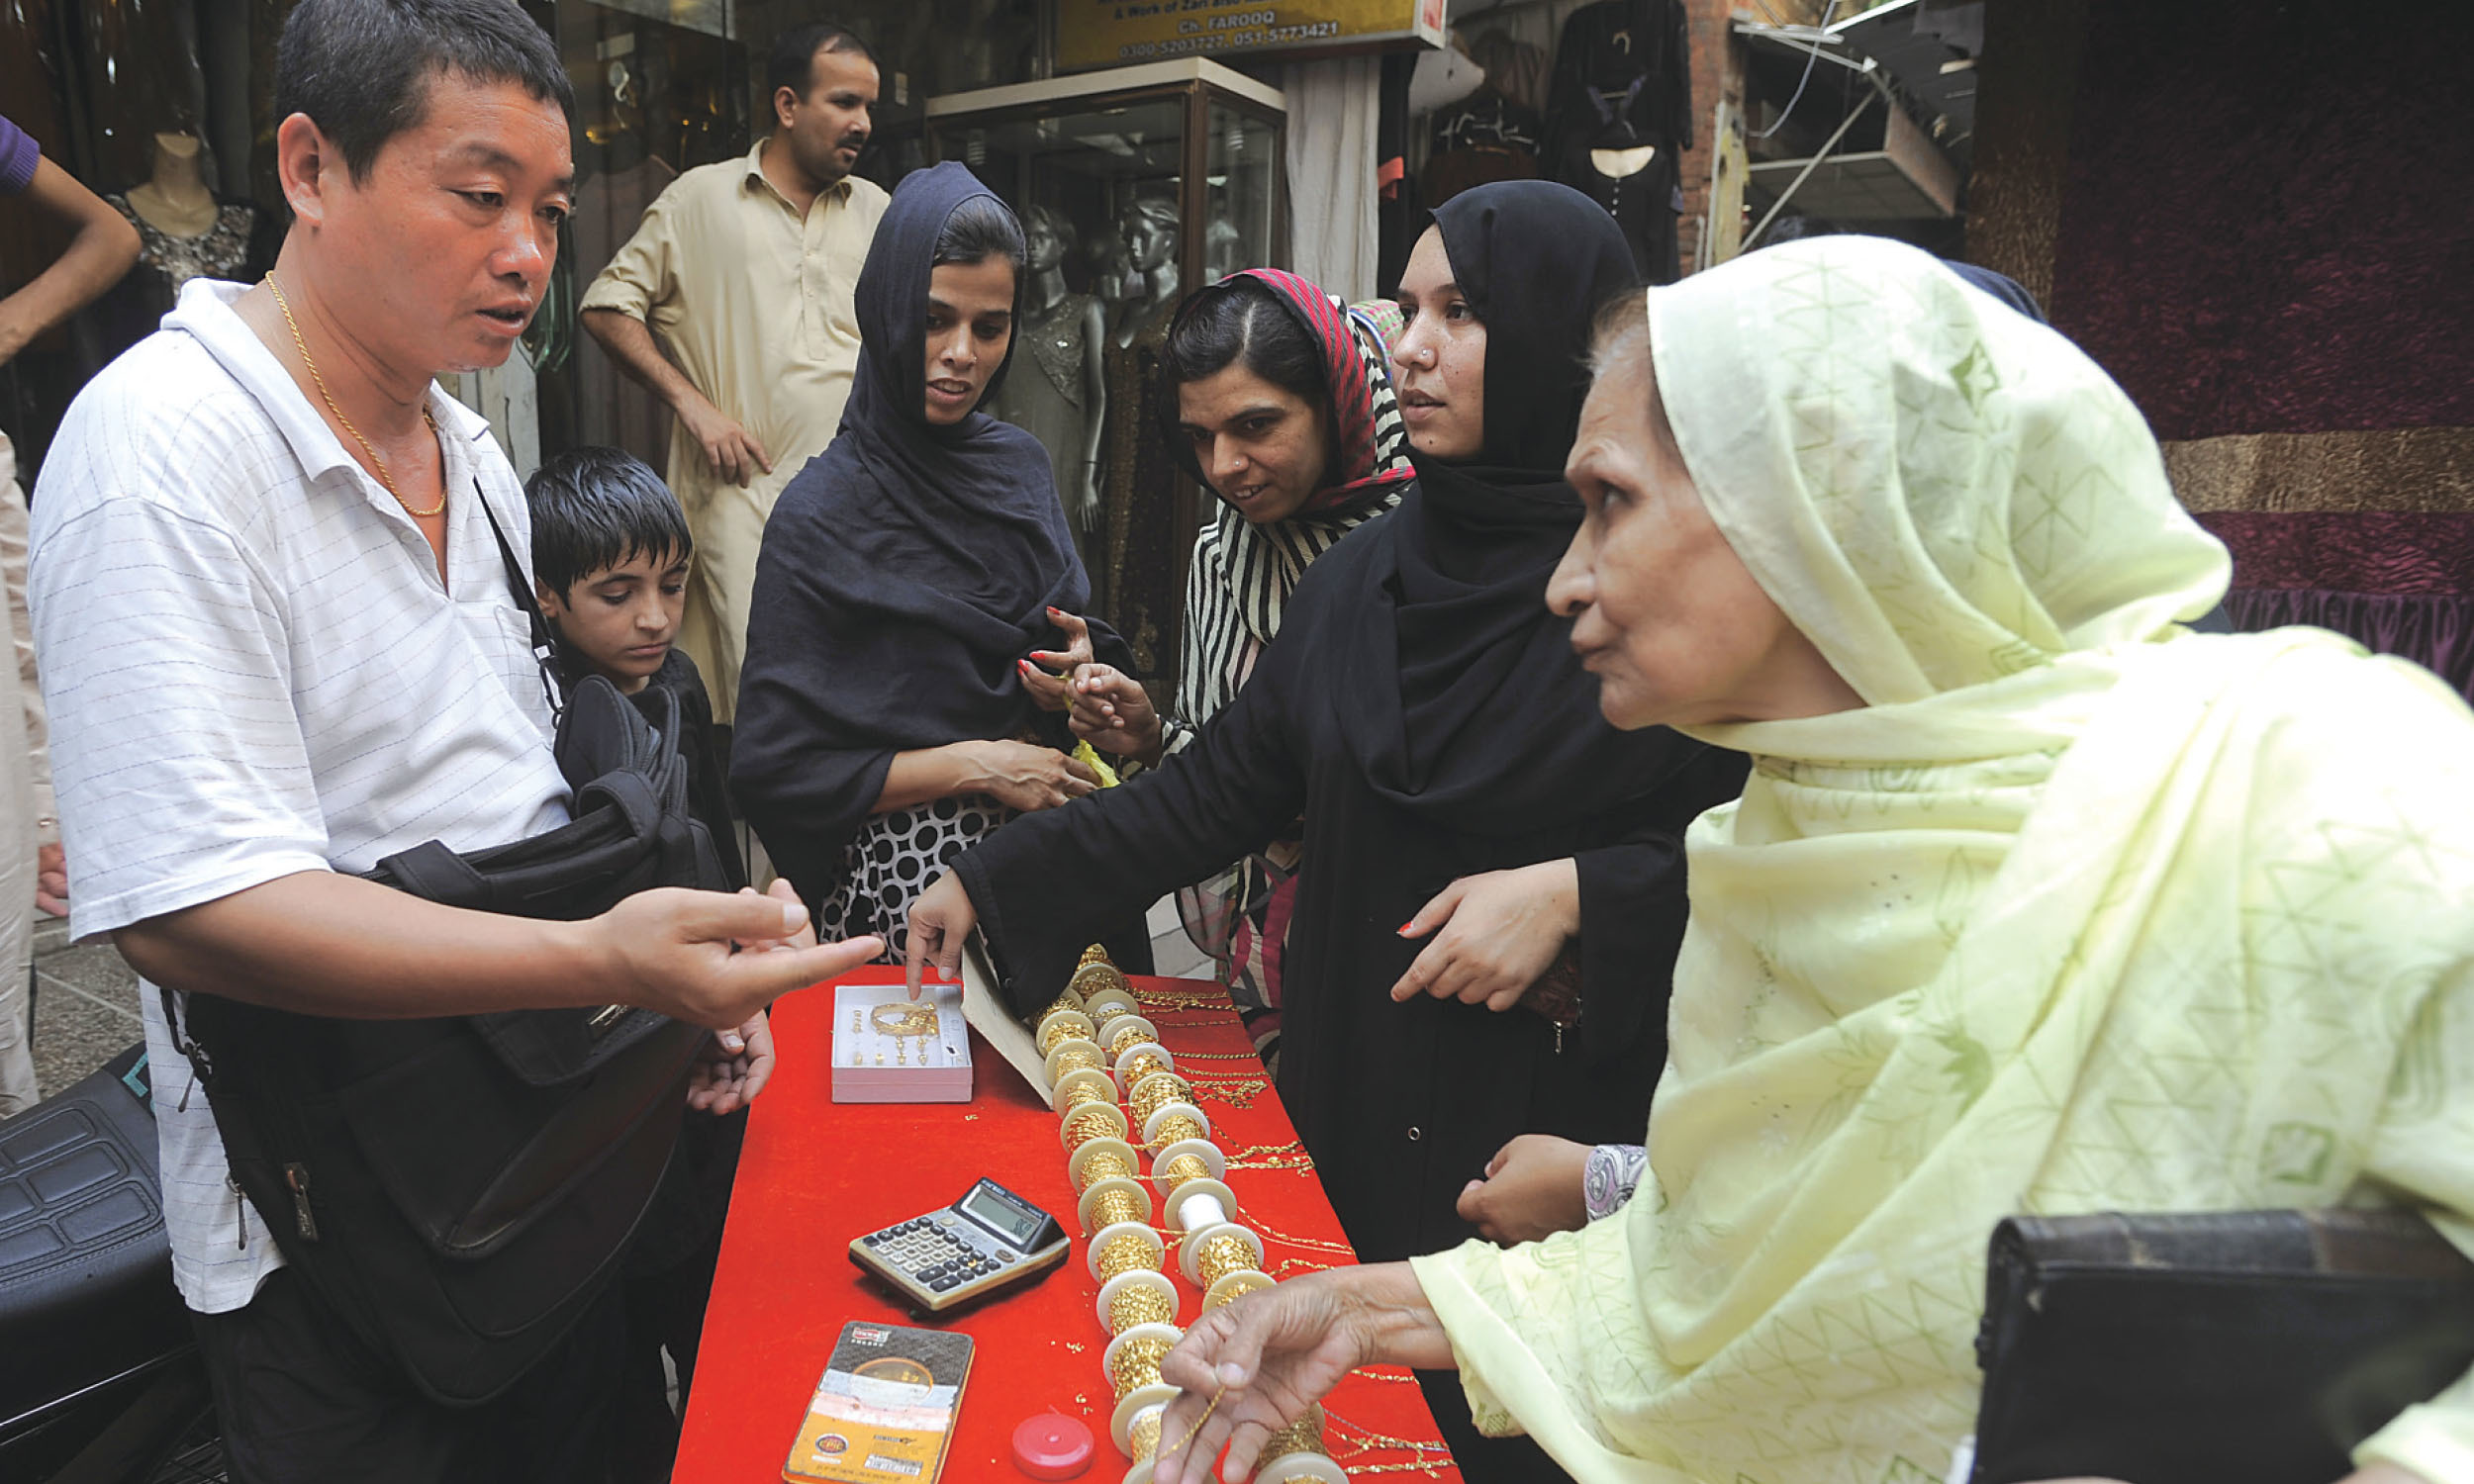 Women buy jewellery from a Chinese vendor in Rawalpindi's Raja Bazaar | Tanveer Shehzad, White Star